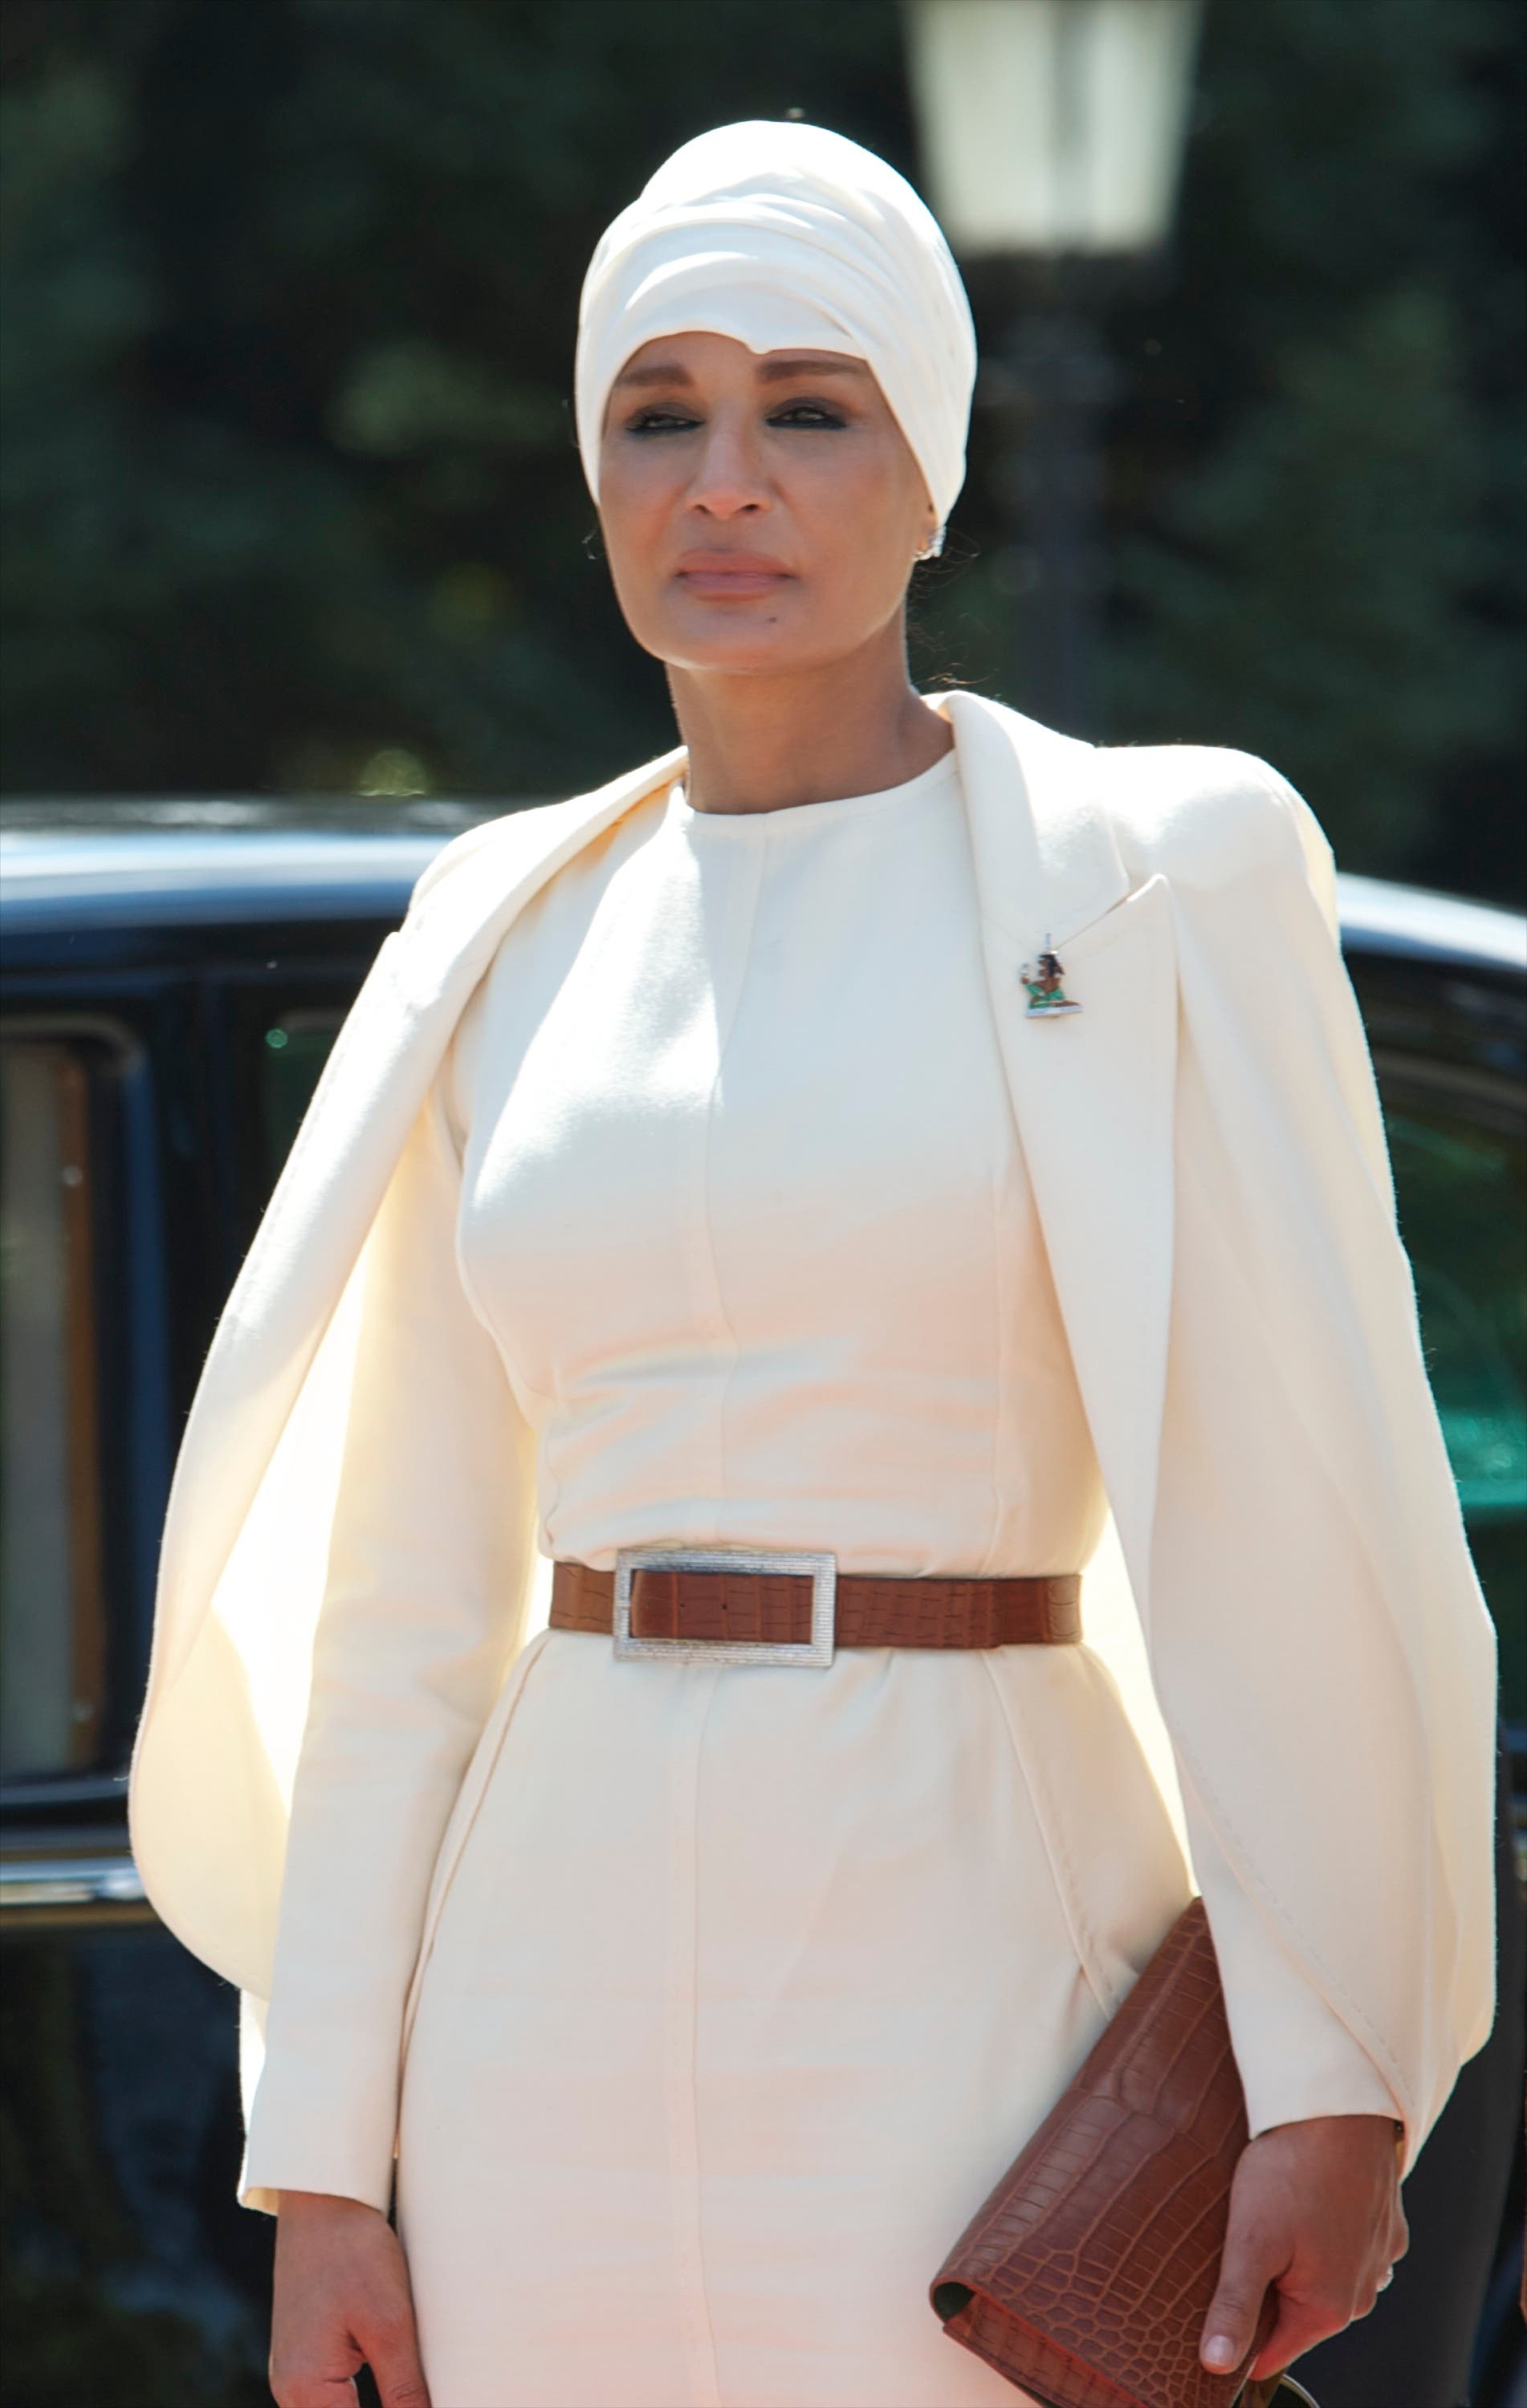 Sheikha Moza is famous for her poise & beauty.